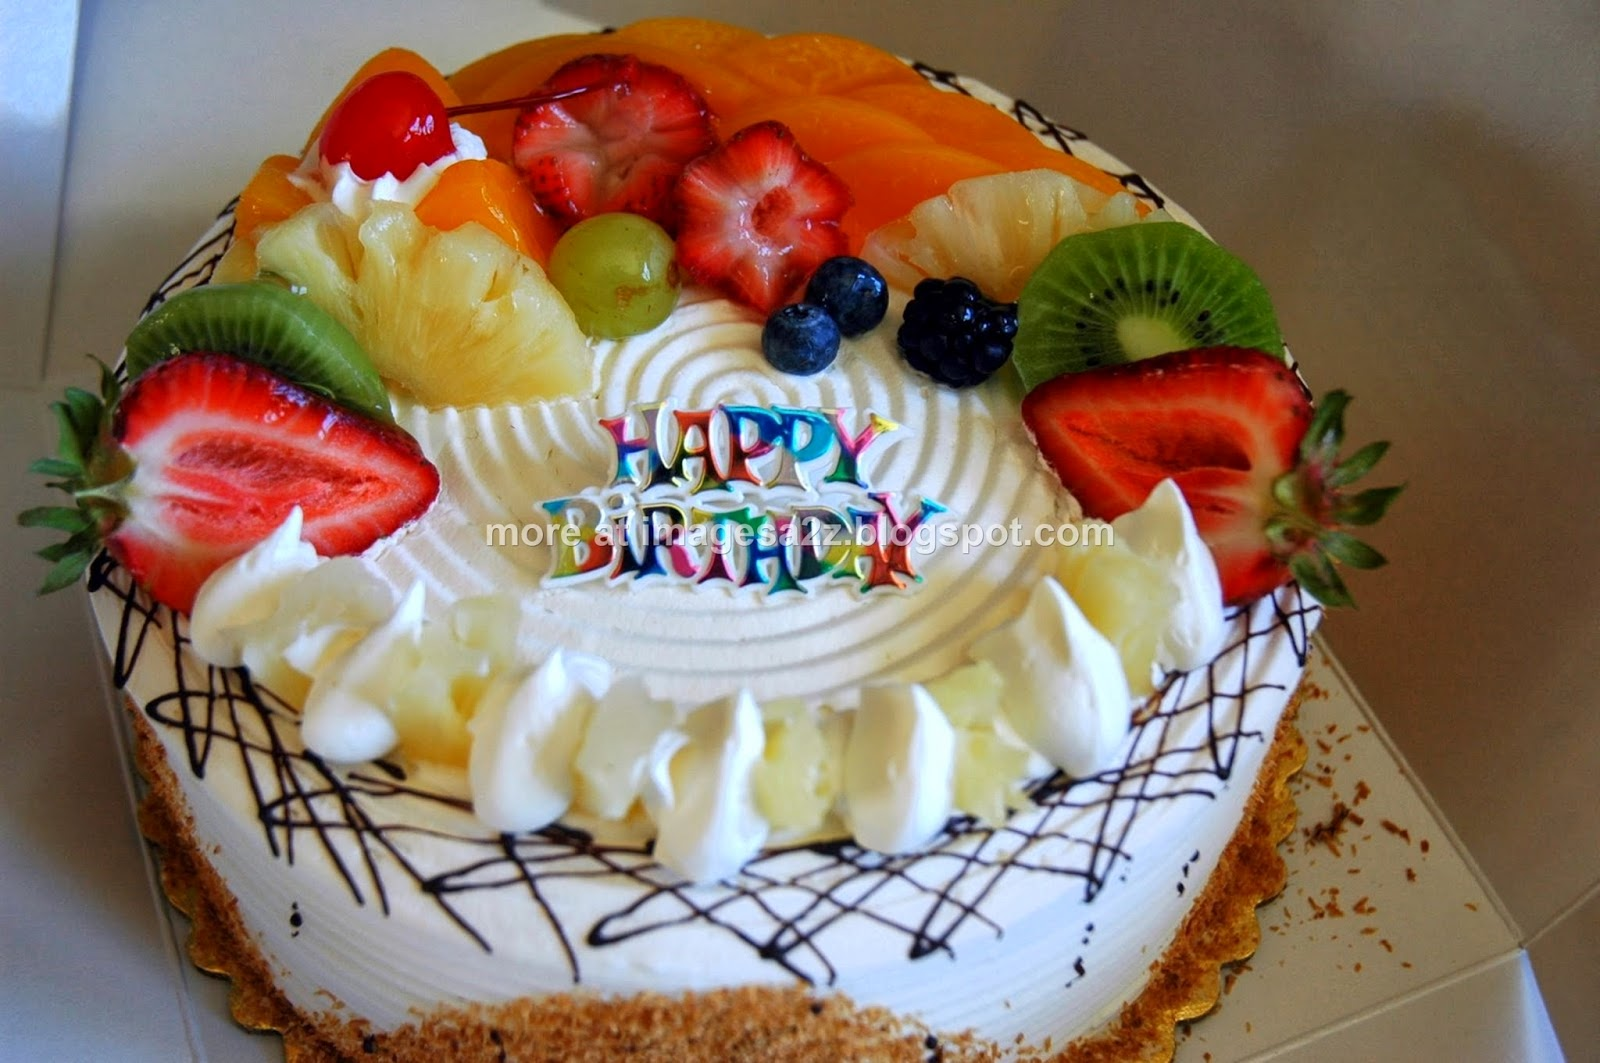 Birthday Cake Greetings For Sister Birthday Inspiring Birthday – Happy Birthday Cake Greetings